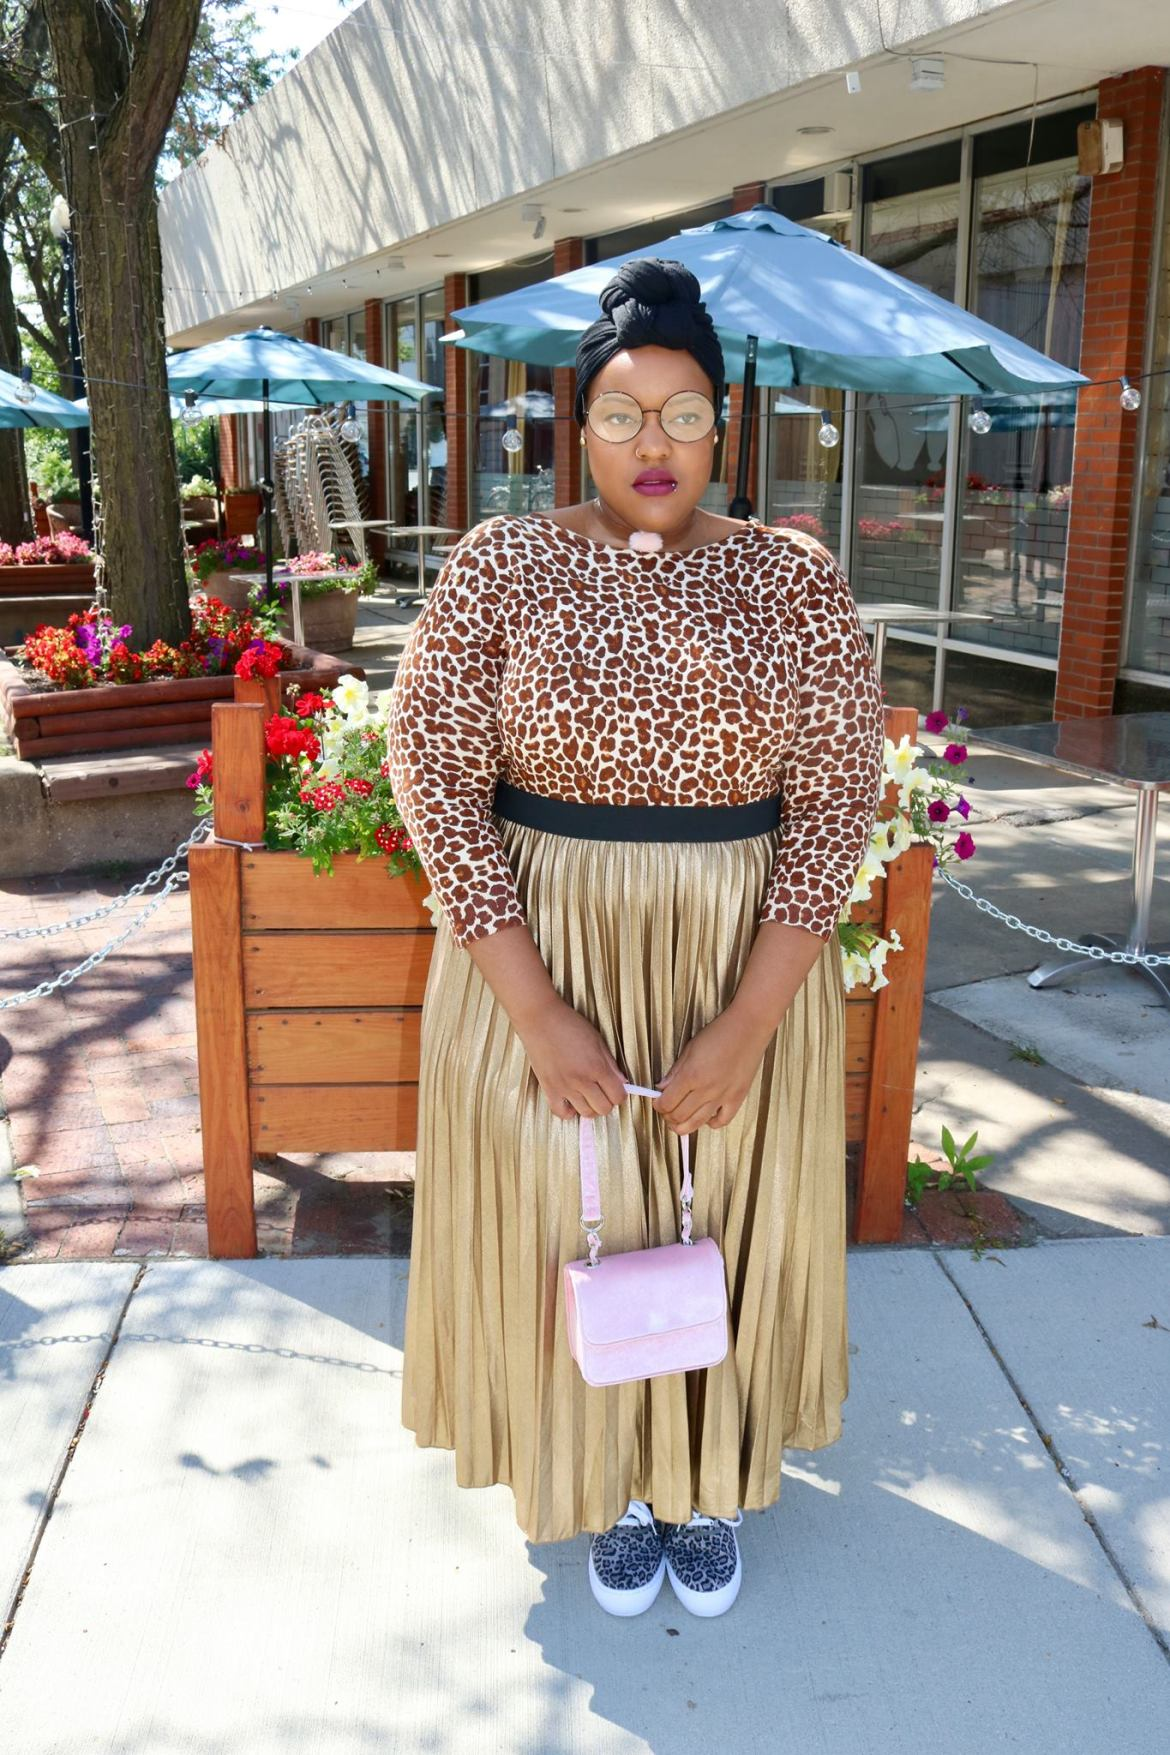 Leah-Vernon-Body-Positive-Plus-Size-Model-Muslim-Girl-Street-Style-Detroit-1